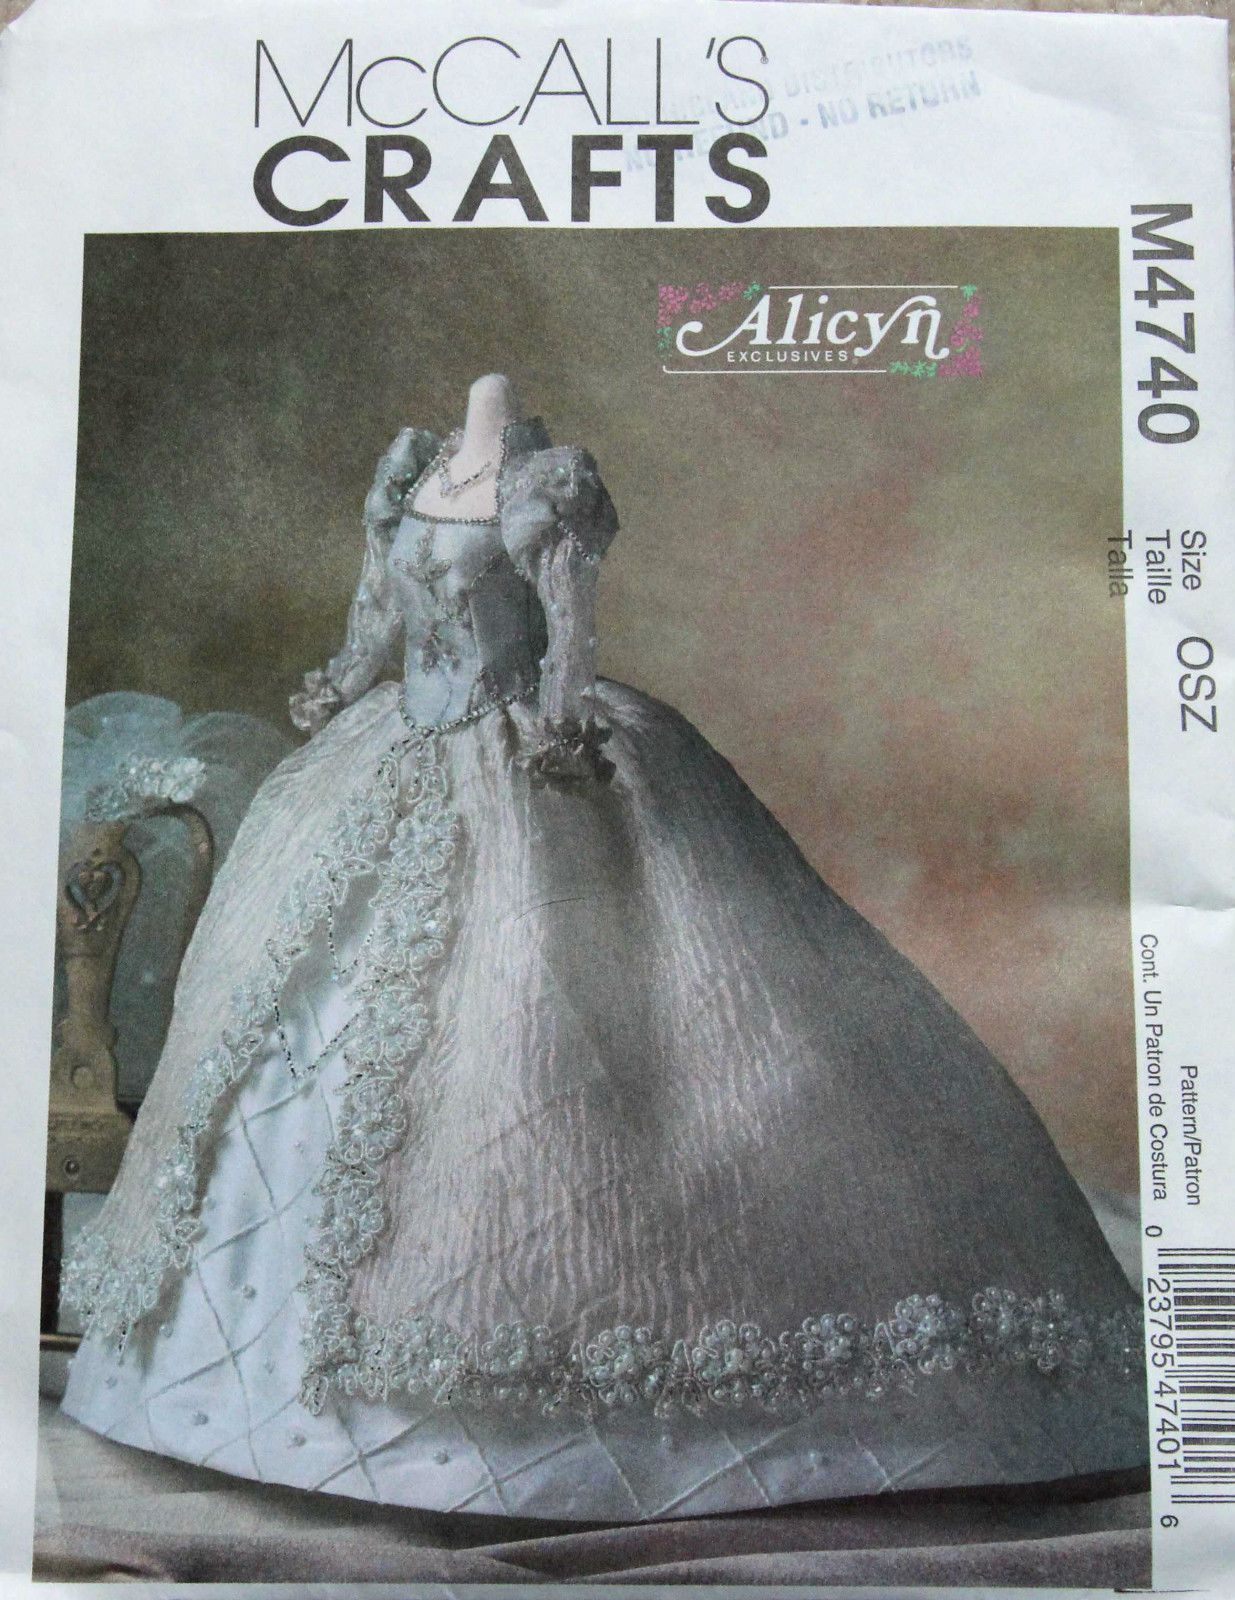 """McCall's Alicyn Wright 11 1 2"""" Doll Bridal Gown Pattern No M4740 